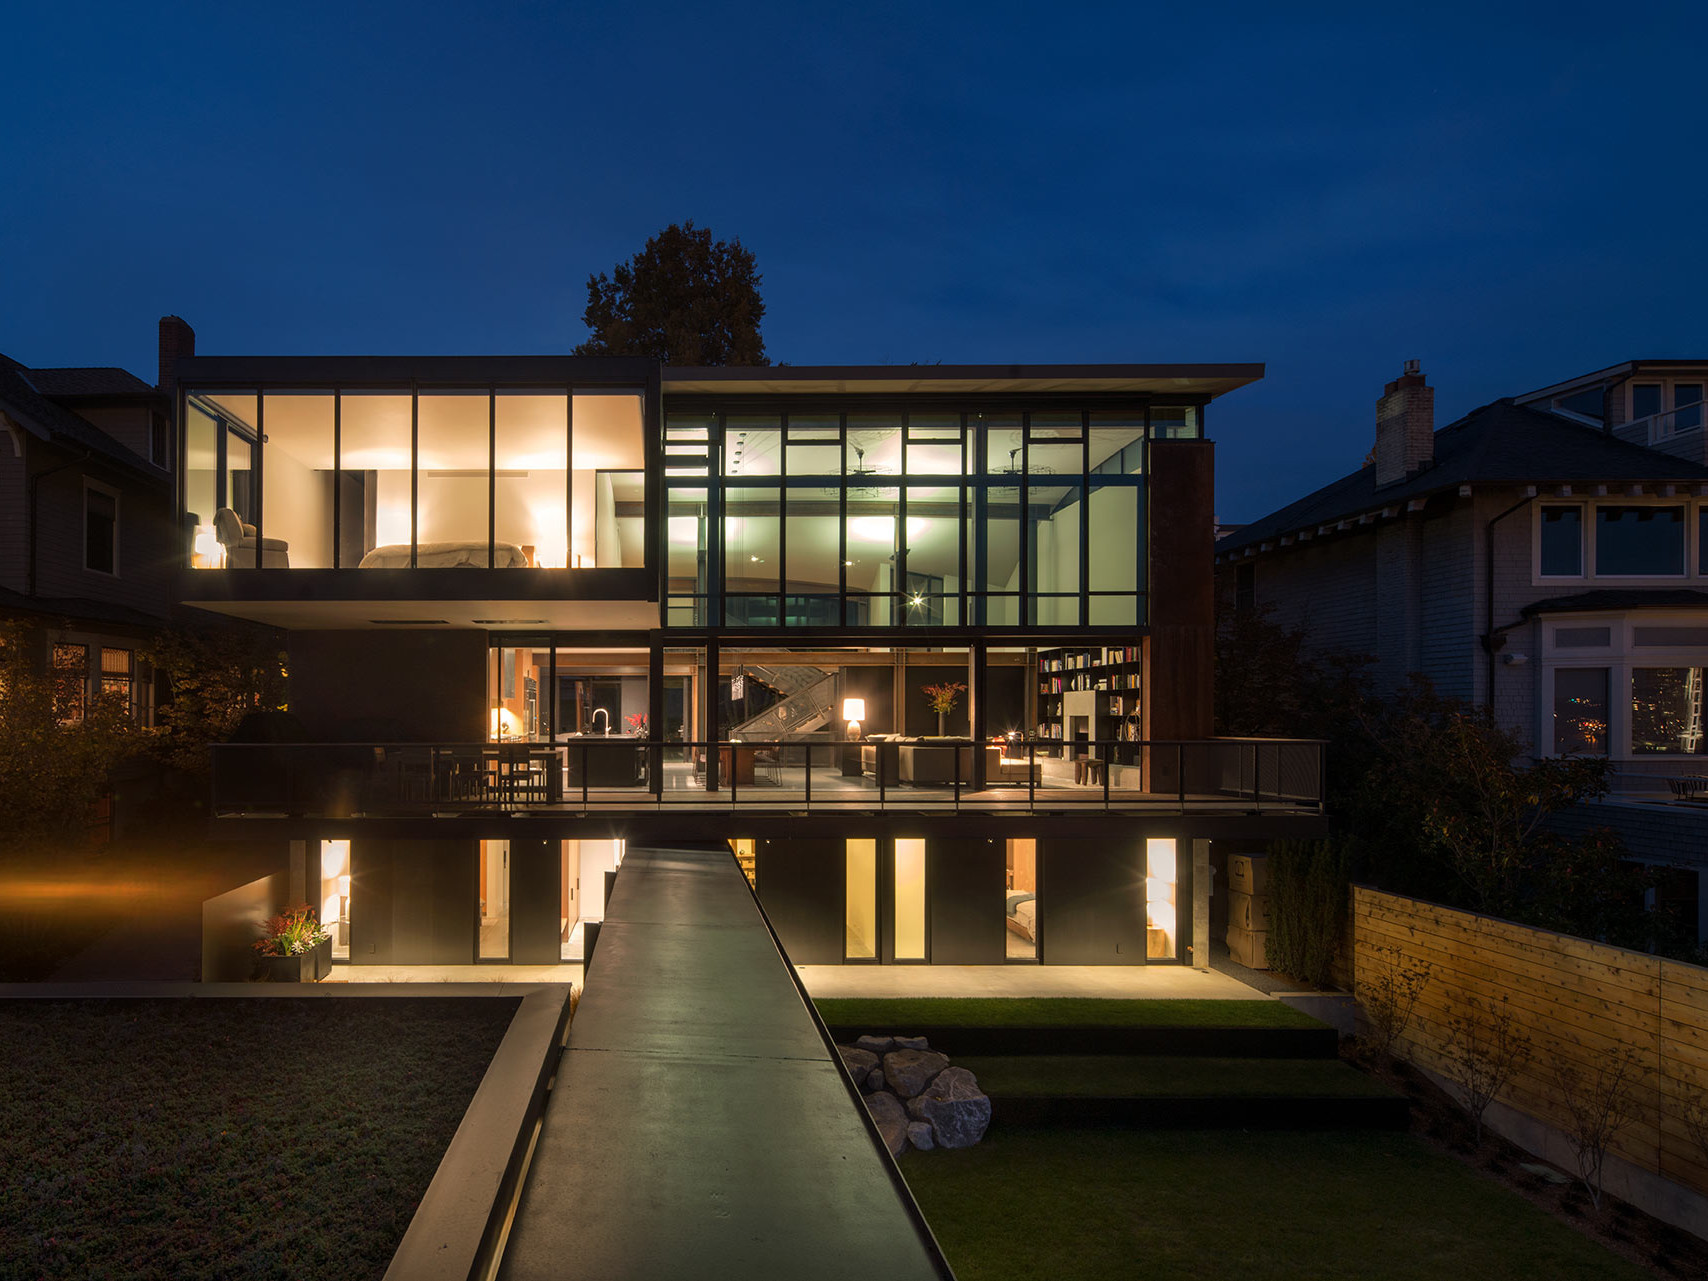 Meg home's front view by night